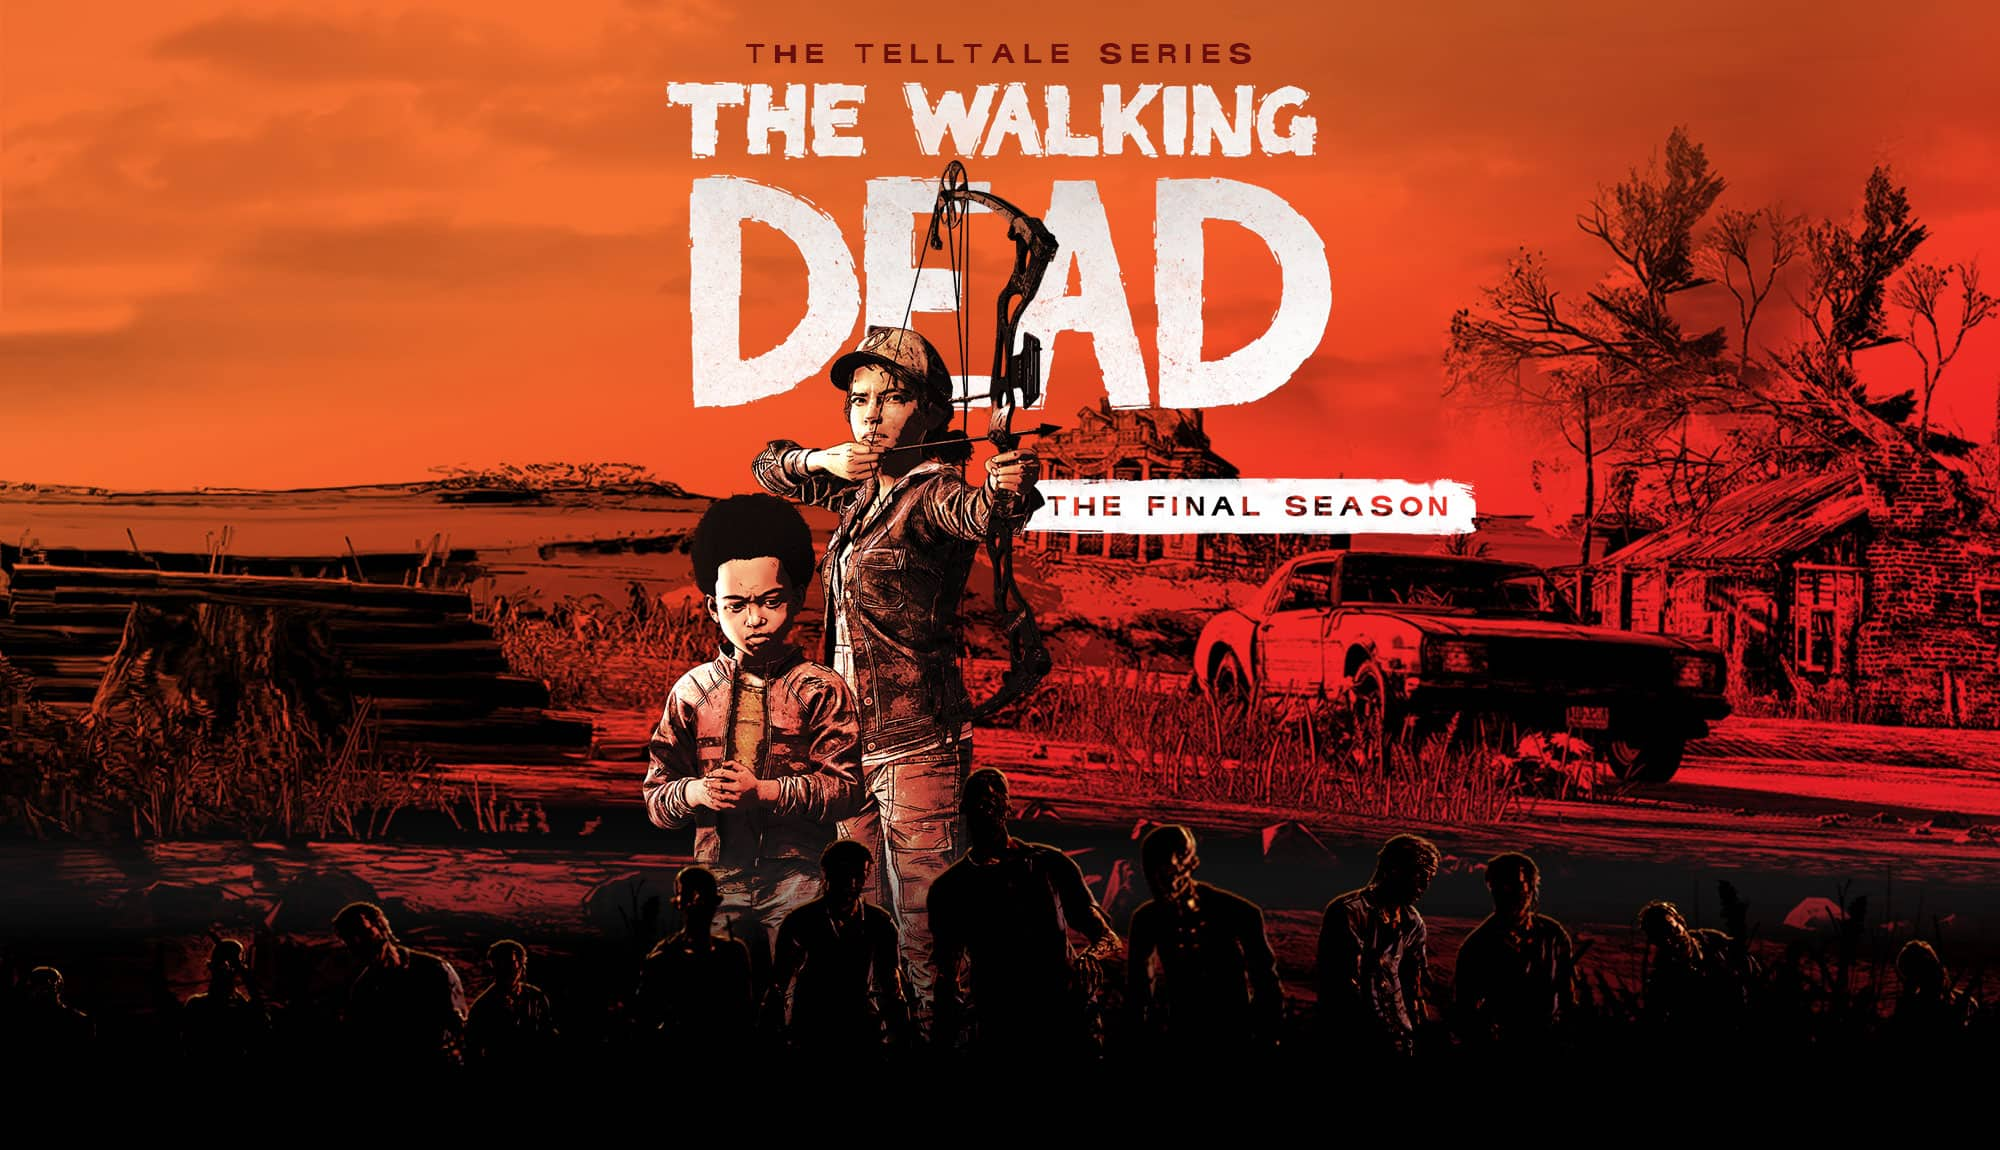 The Walking Dead The Final Season Episode 4 OUT NOW